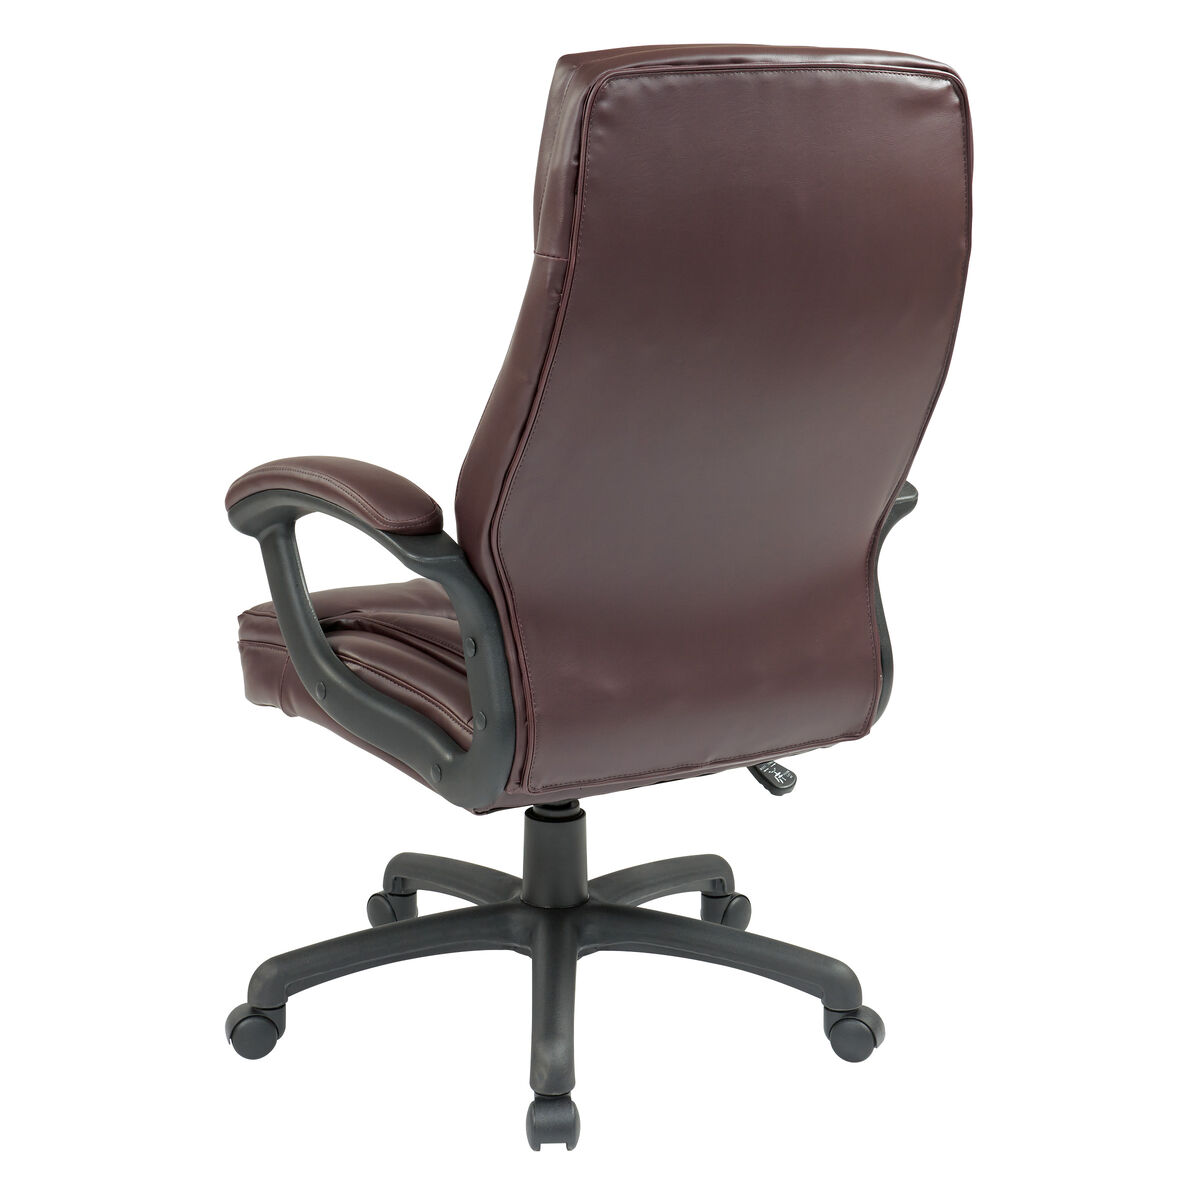 Our Work Smart Executive High Back Eco Leather Office Chair With Seat Adjustment